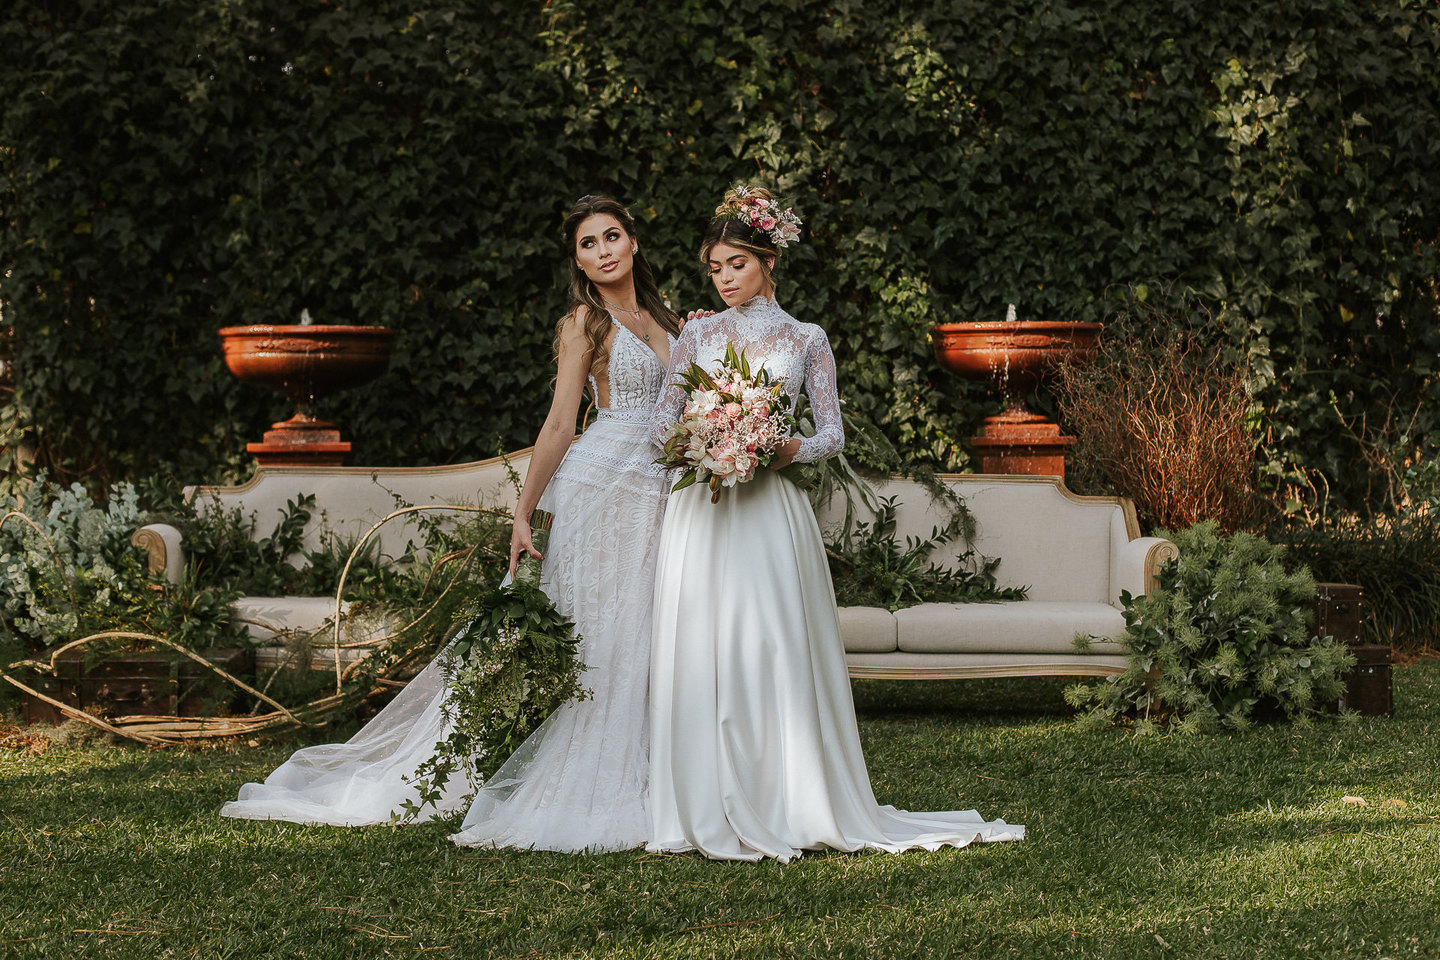 Editorial Dreams Wedding - Beleza Natural das Noivas